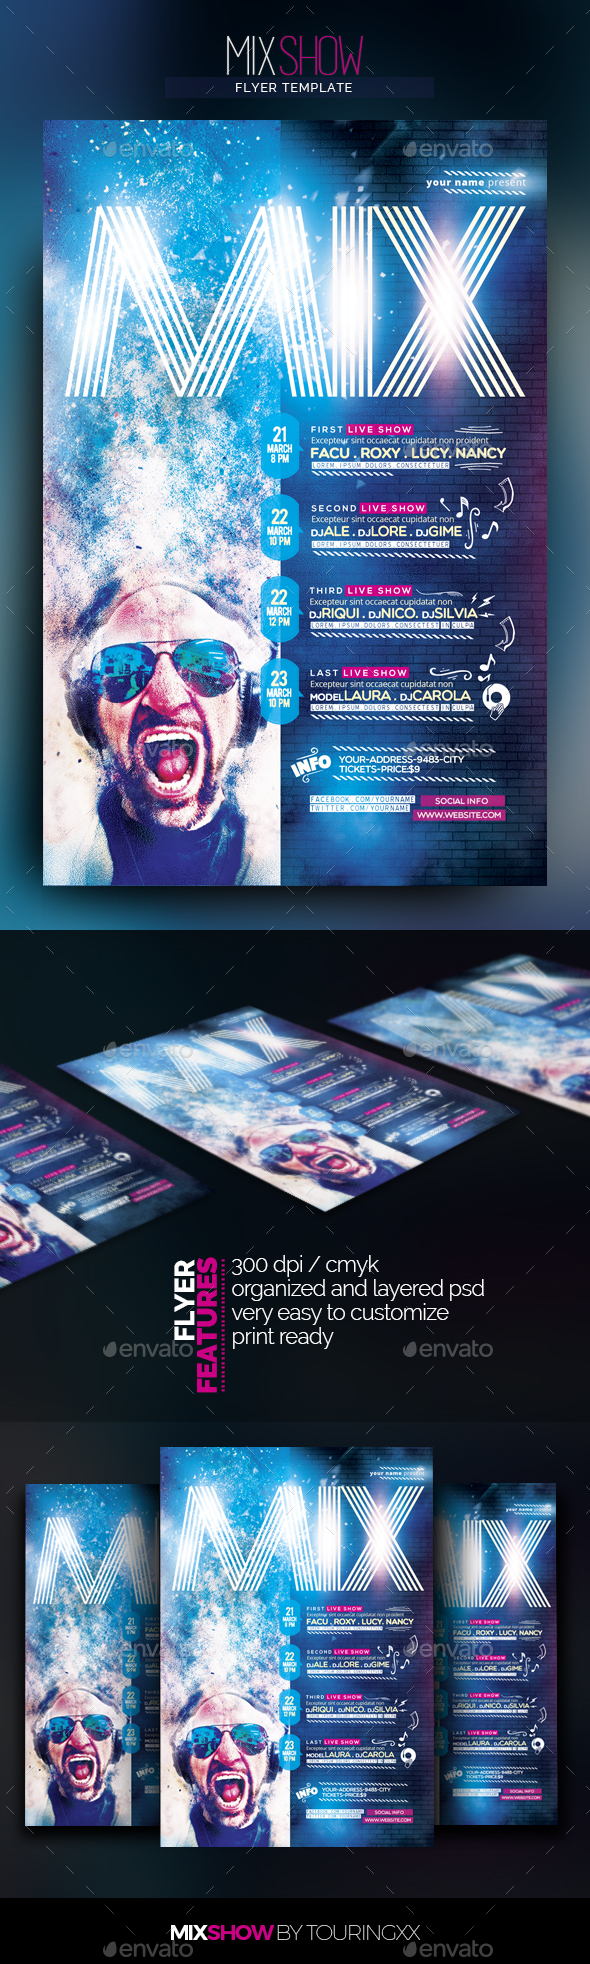 Mix Show Flyer Template - Flyers Print Templates